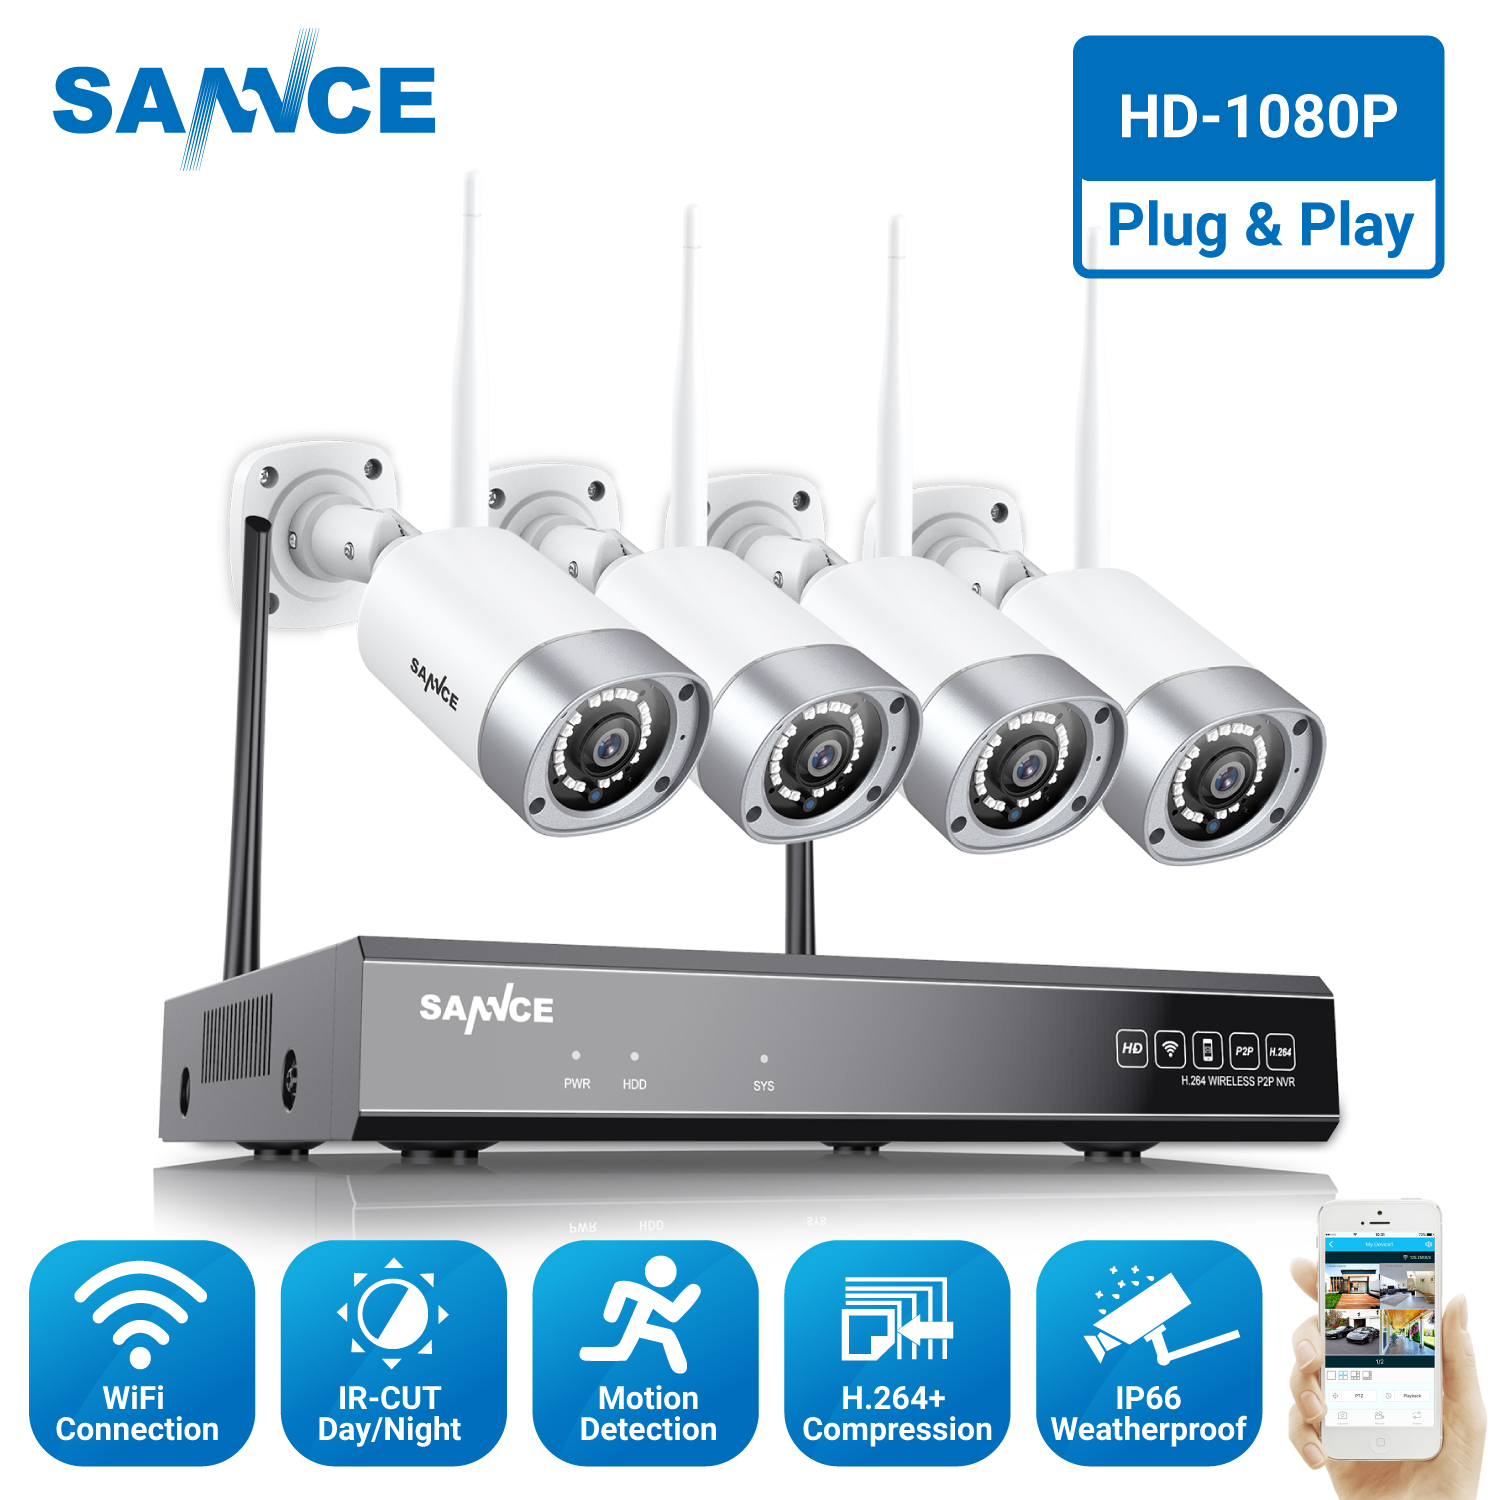 SANNCE Full HD 1080 P 8CH Draadloze NVR Cctv Systeem 2.0MP IP Camera 1080 P Wifi Netwerk IP66 Outdoor surveillance kit-in Bewakingssysteem van Veiligheid en bescherming op  Groep 1